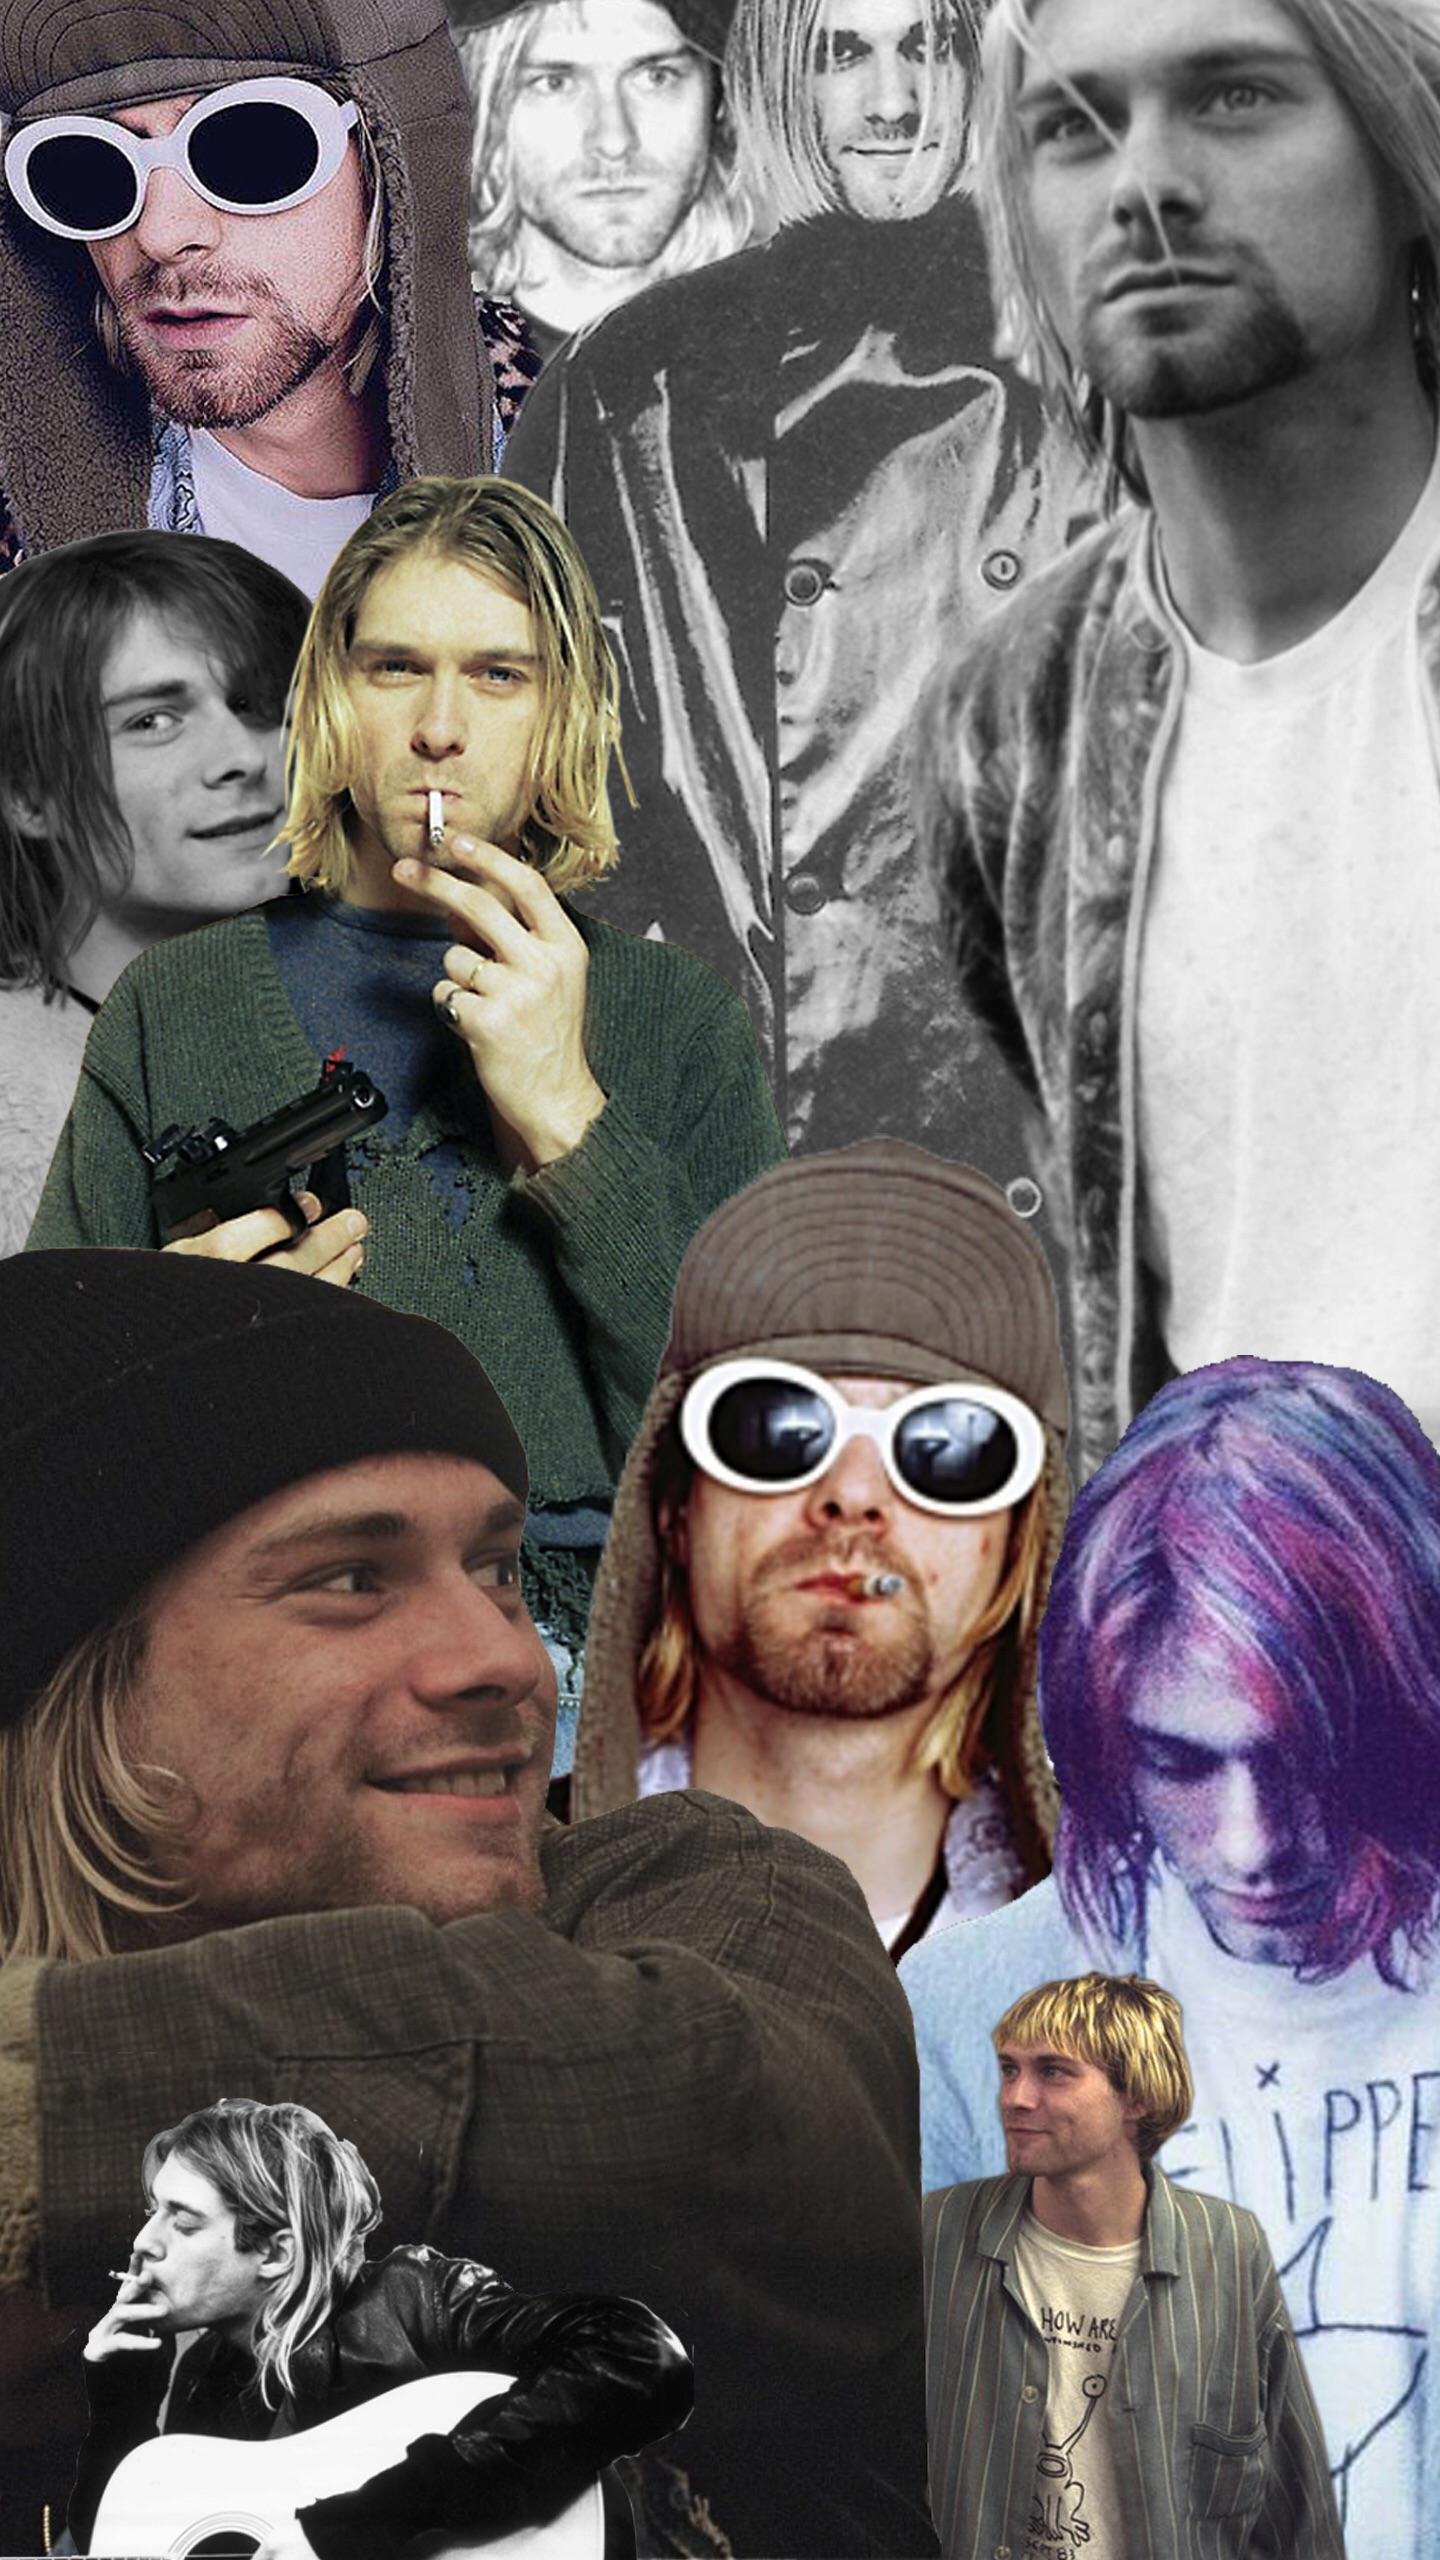 Kurt cobain wallpaper for mobile devices made by me On 2K 1440x2560